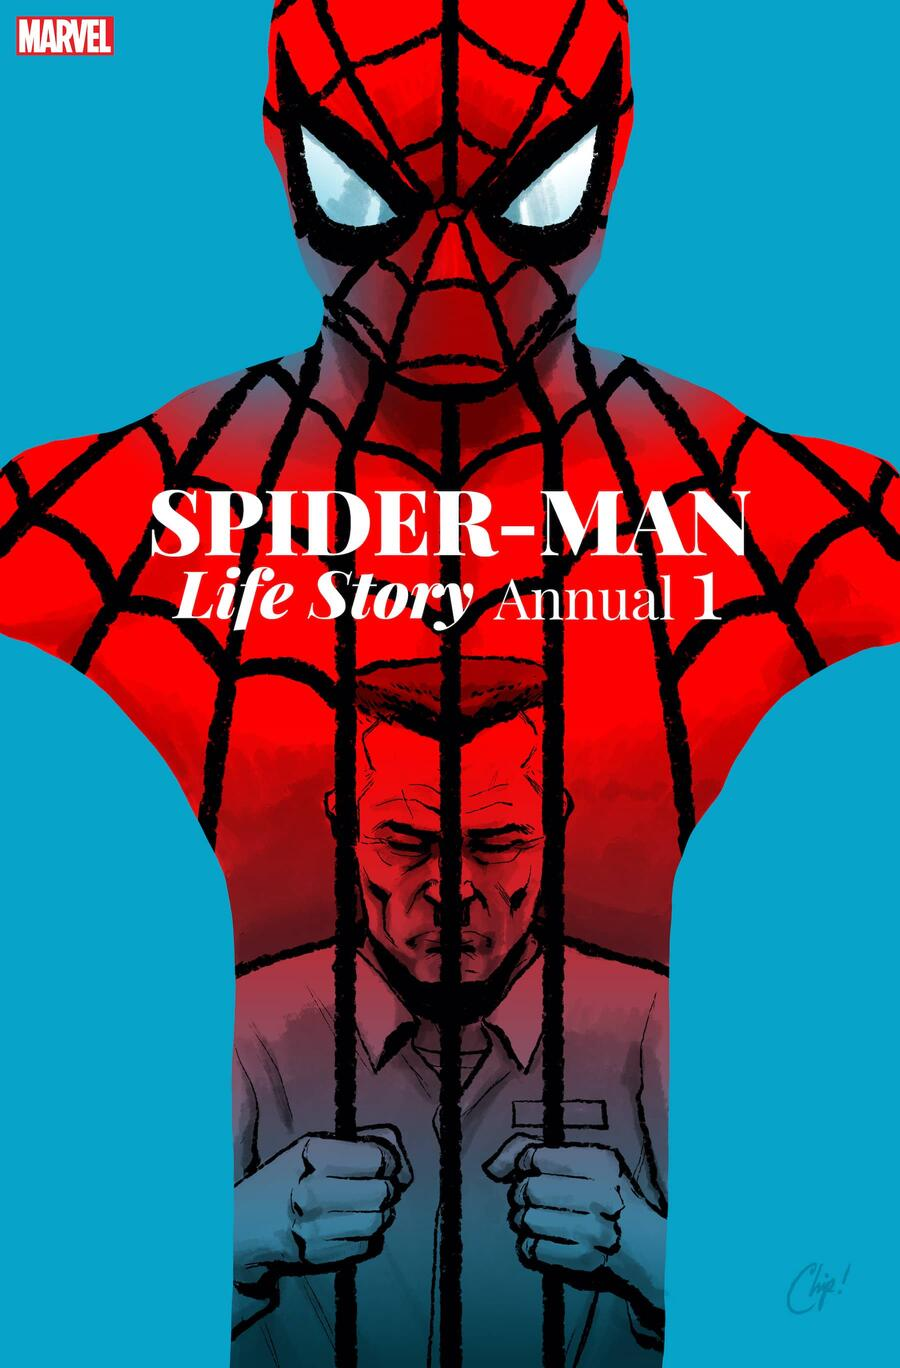 SPIDER-MAN: LIFE STORY ANNUAL #1 cover by Chip Zdarsky